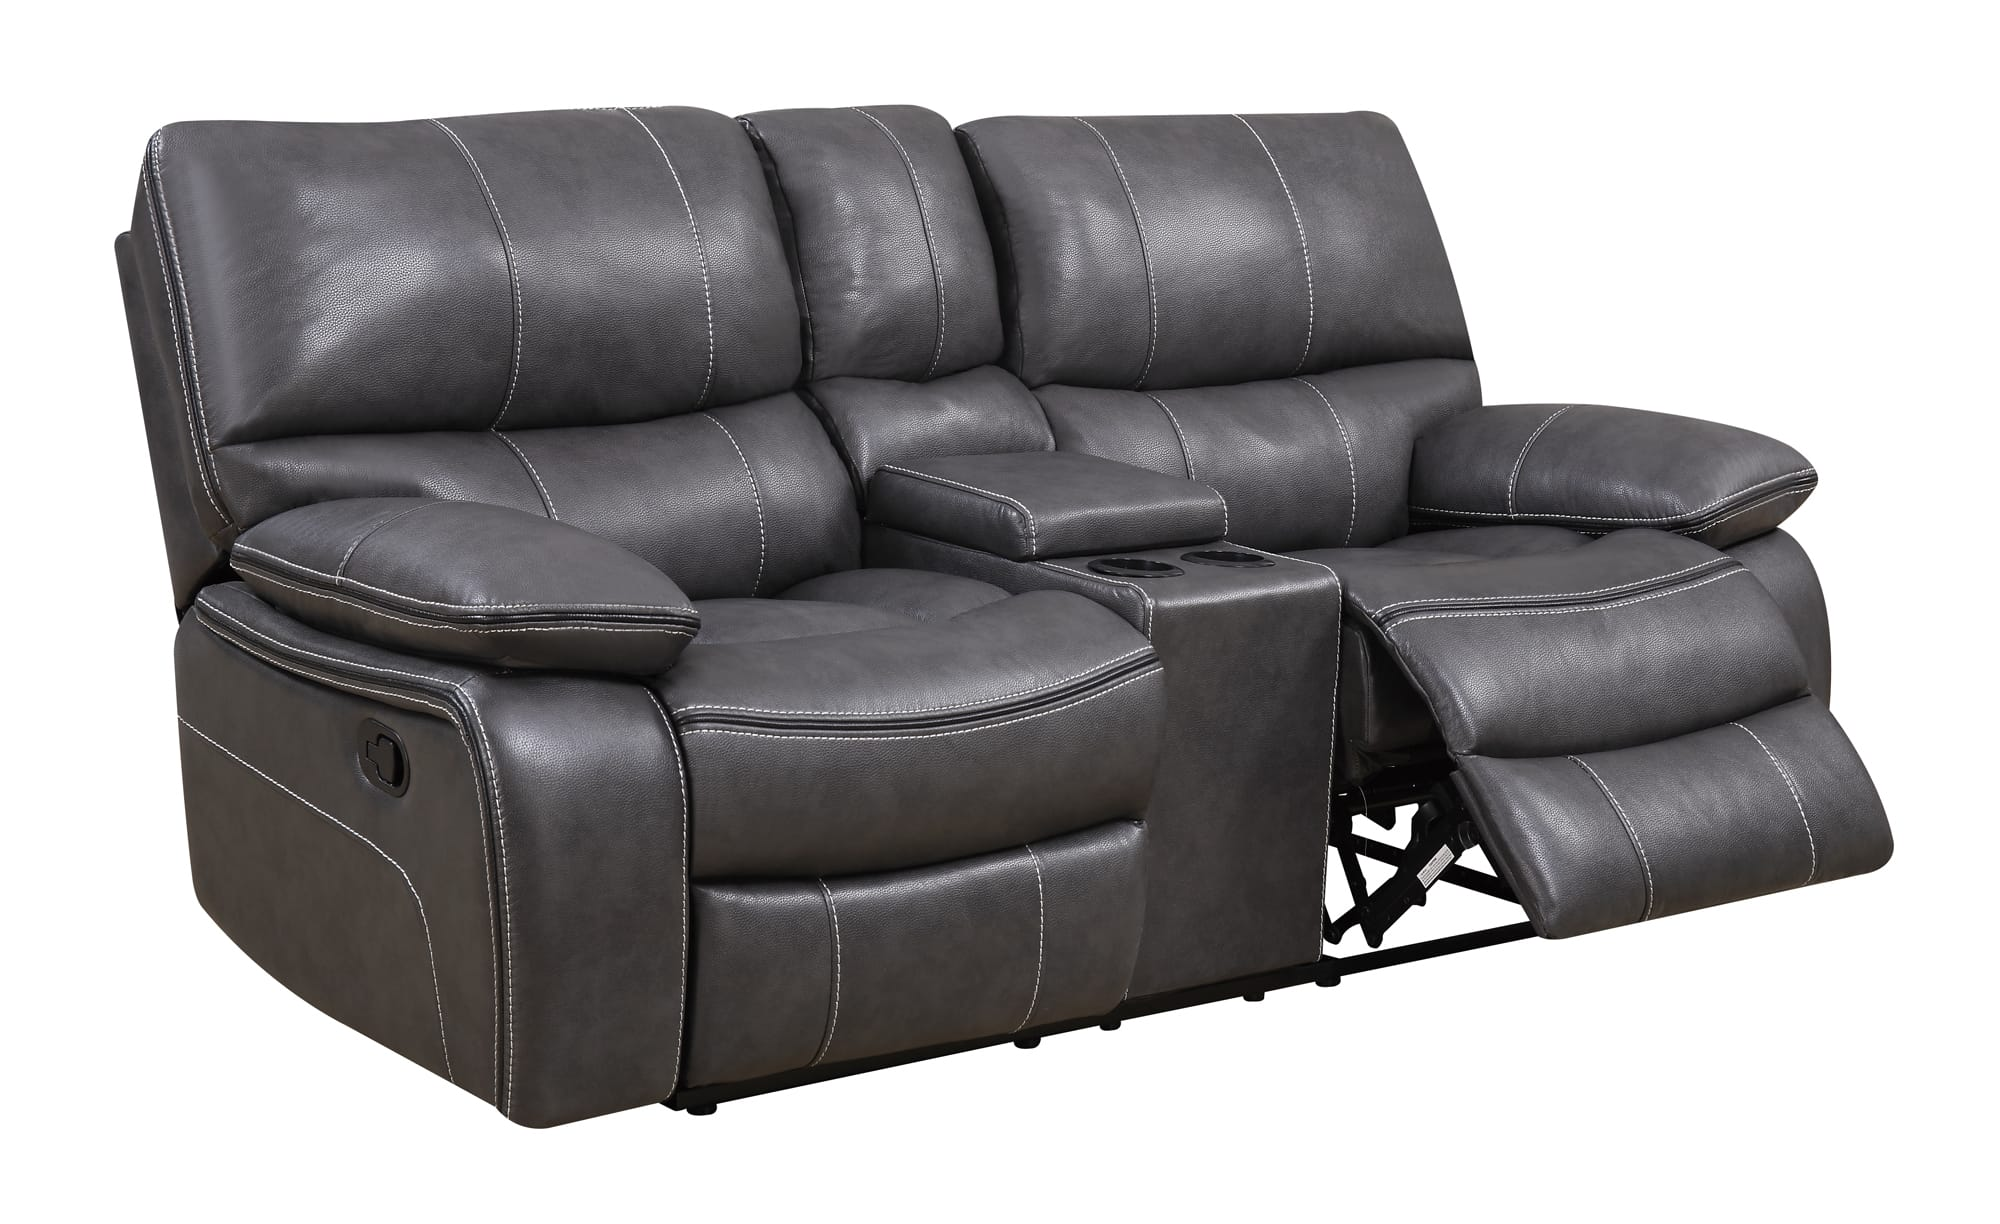 U0040 grey black leather console reclining loveseat by global furniture Leather reclining loveseat